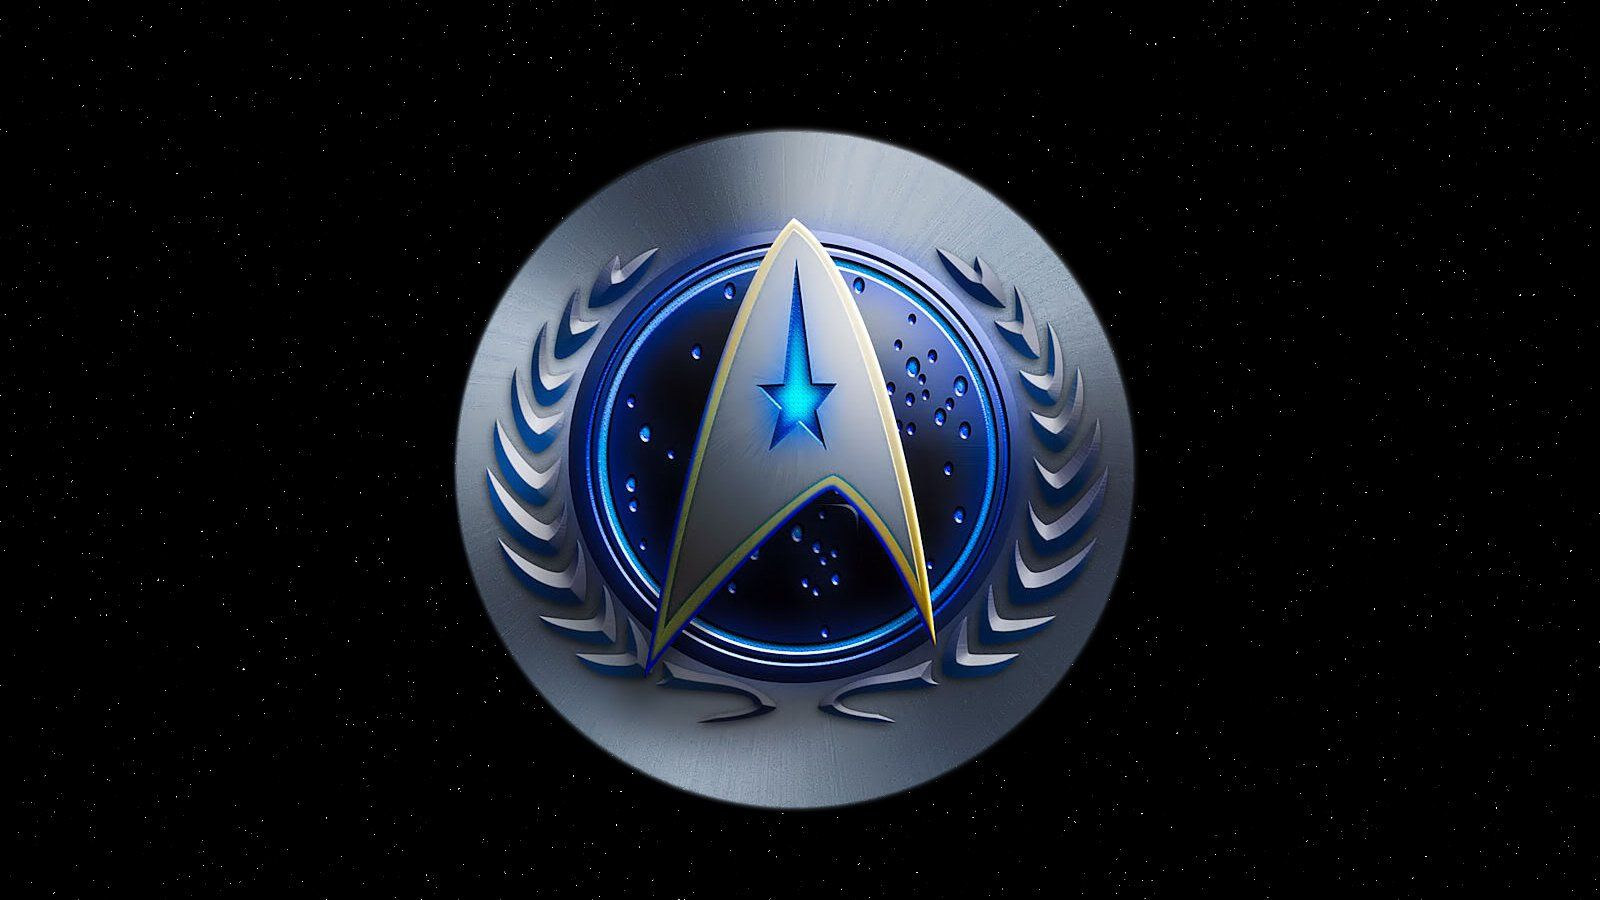 Star Trek Wallpapers Top Free Star Trek Backgrounds